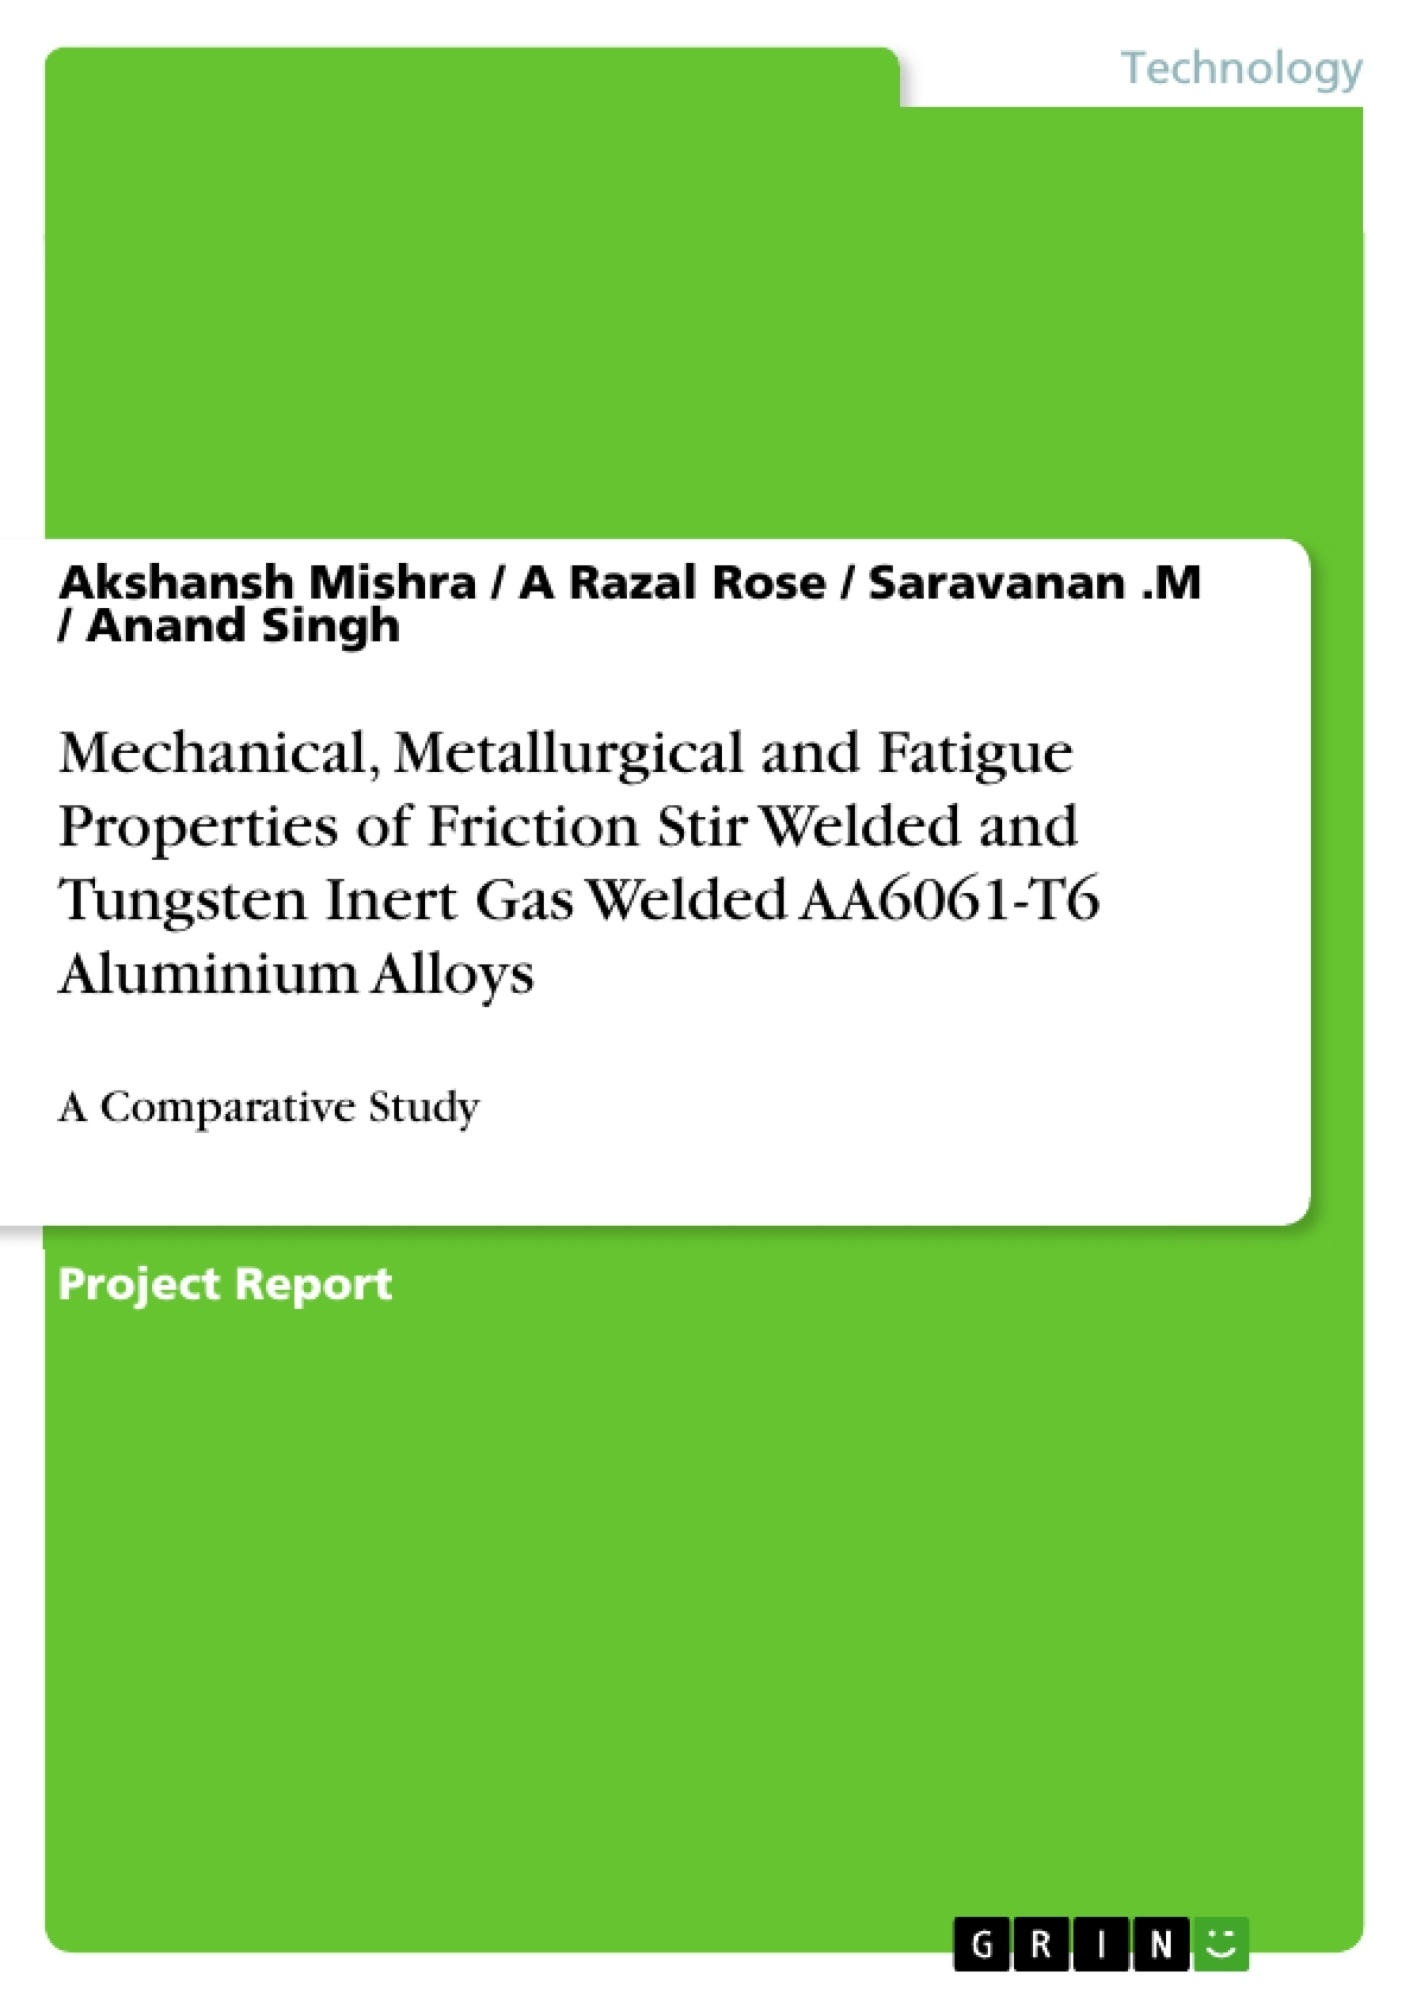 Title: Mechanical, Metallurgical and Fatigue Properties of Friction Stir Welded and Tungsten Inert Gas Welded AA6061-T6 Aluminium Alloys